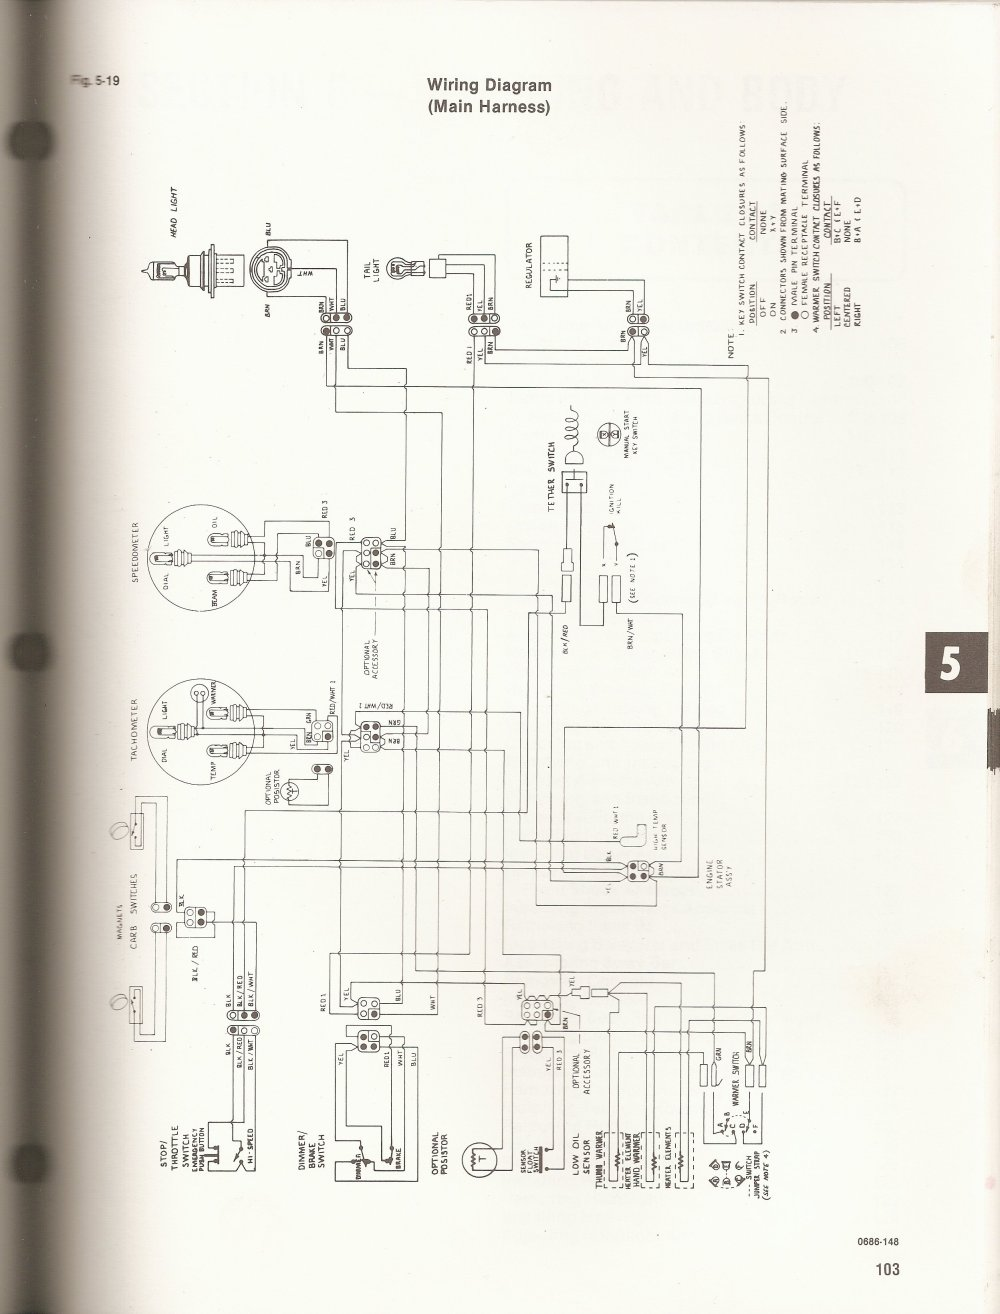 medium resolution of 1992 wildcat wiring diagram arcticchat com arctic cat forum 1992 arctic cat wildcat 700 wiring diagram 1992 arctic cat 700 wildcat wiring diagram